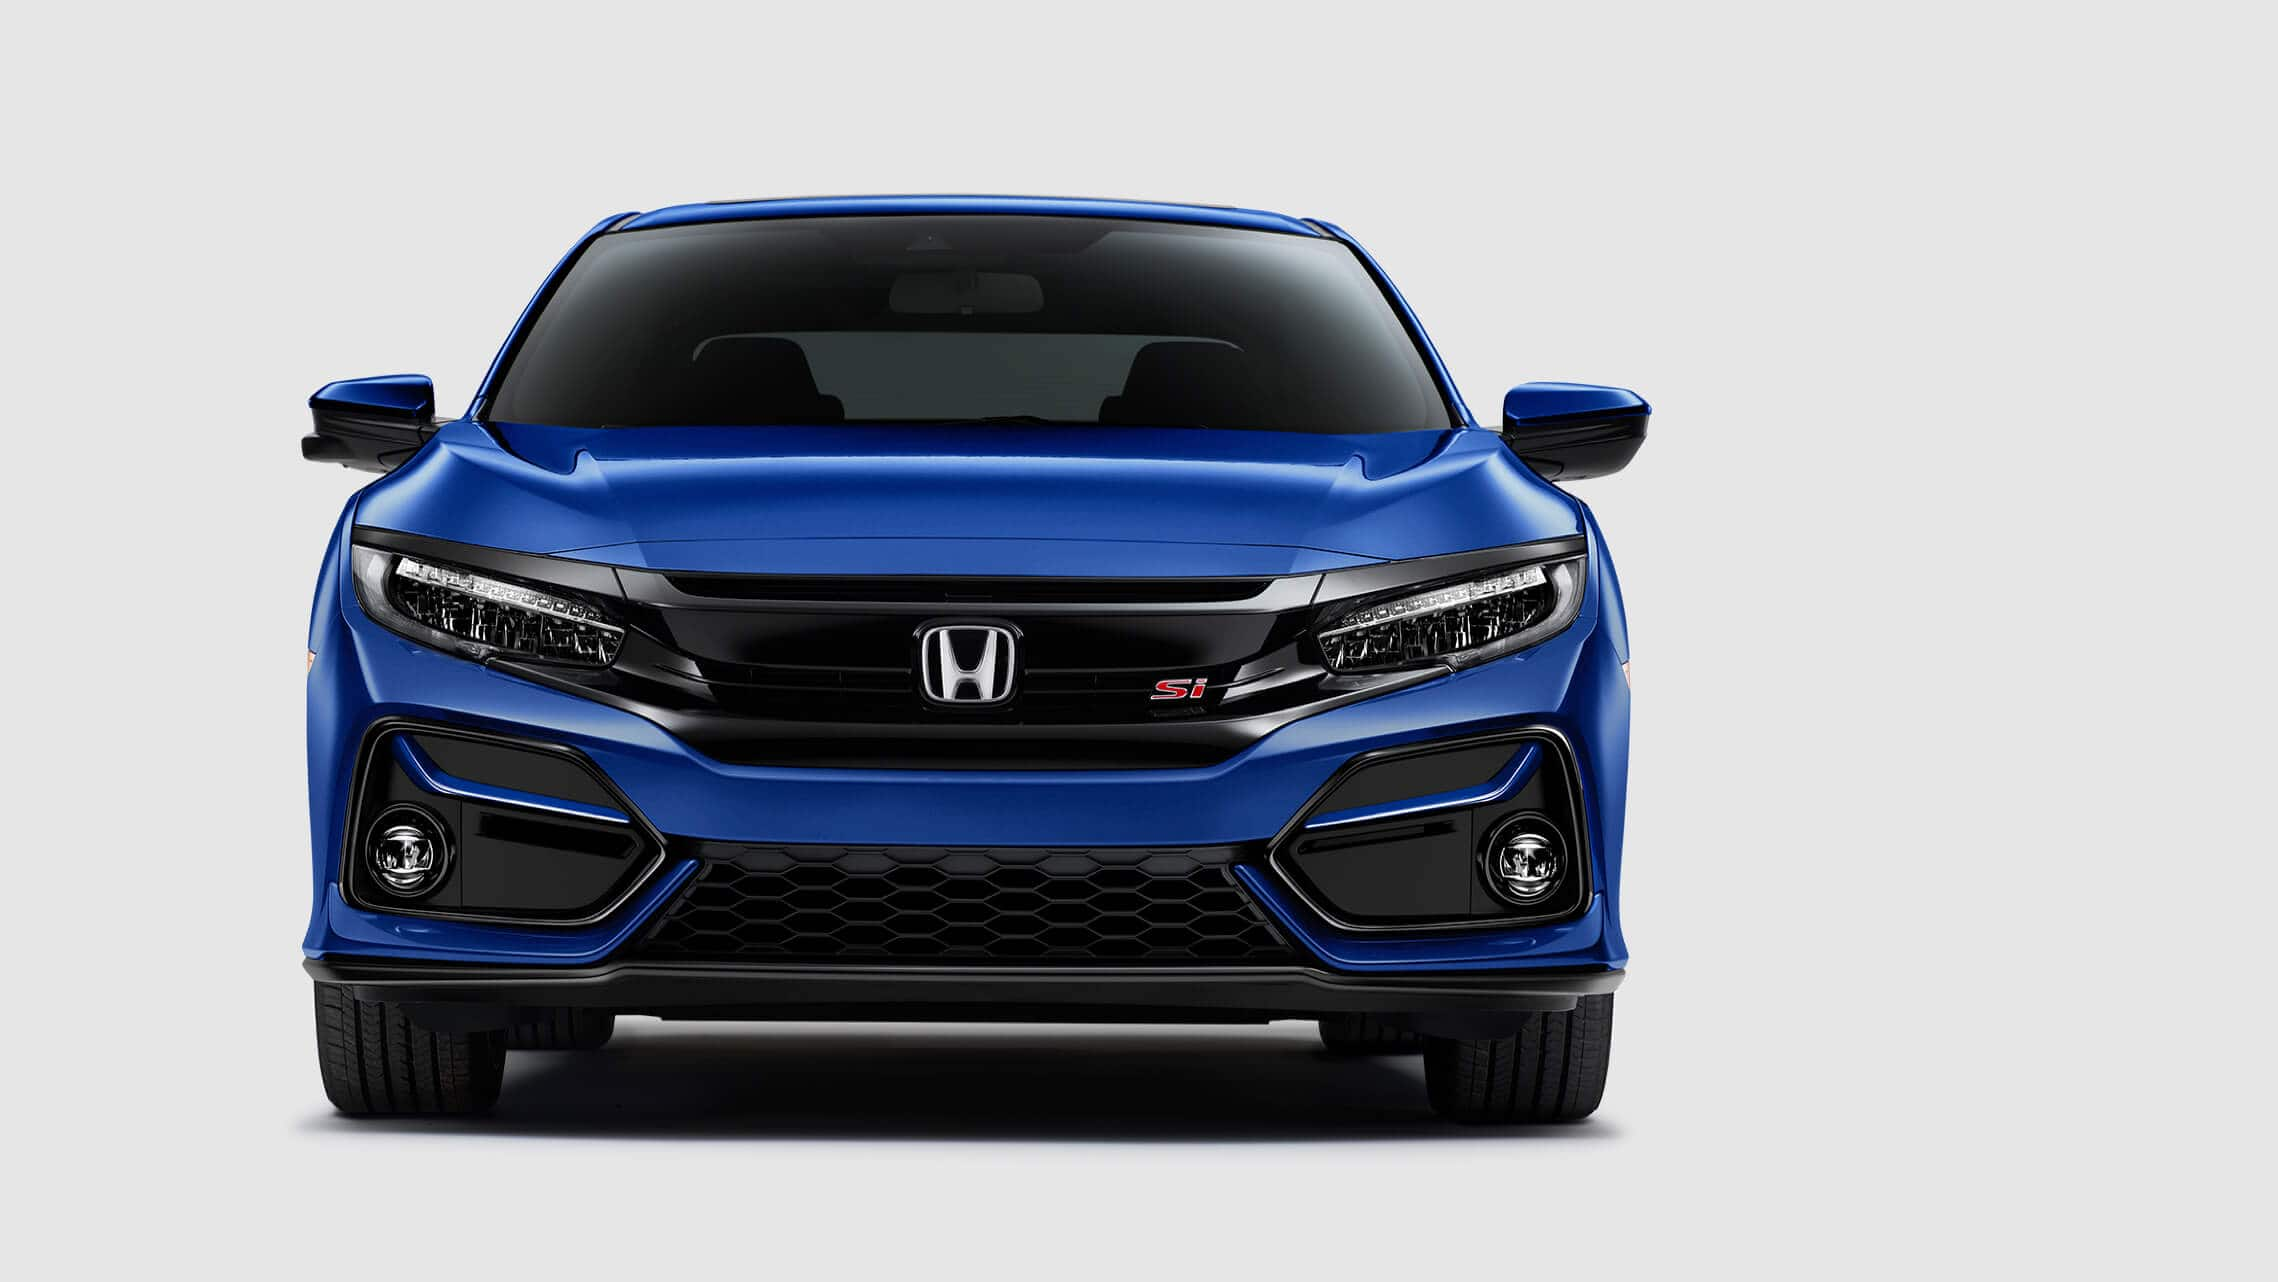 Front view of 2020 Honda Civic Si Sedan in Aegean Blue Metallic.